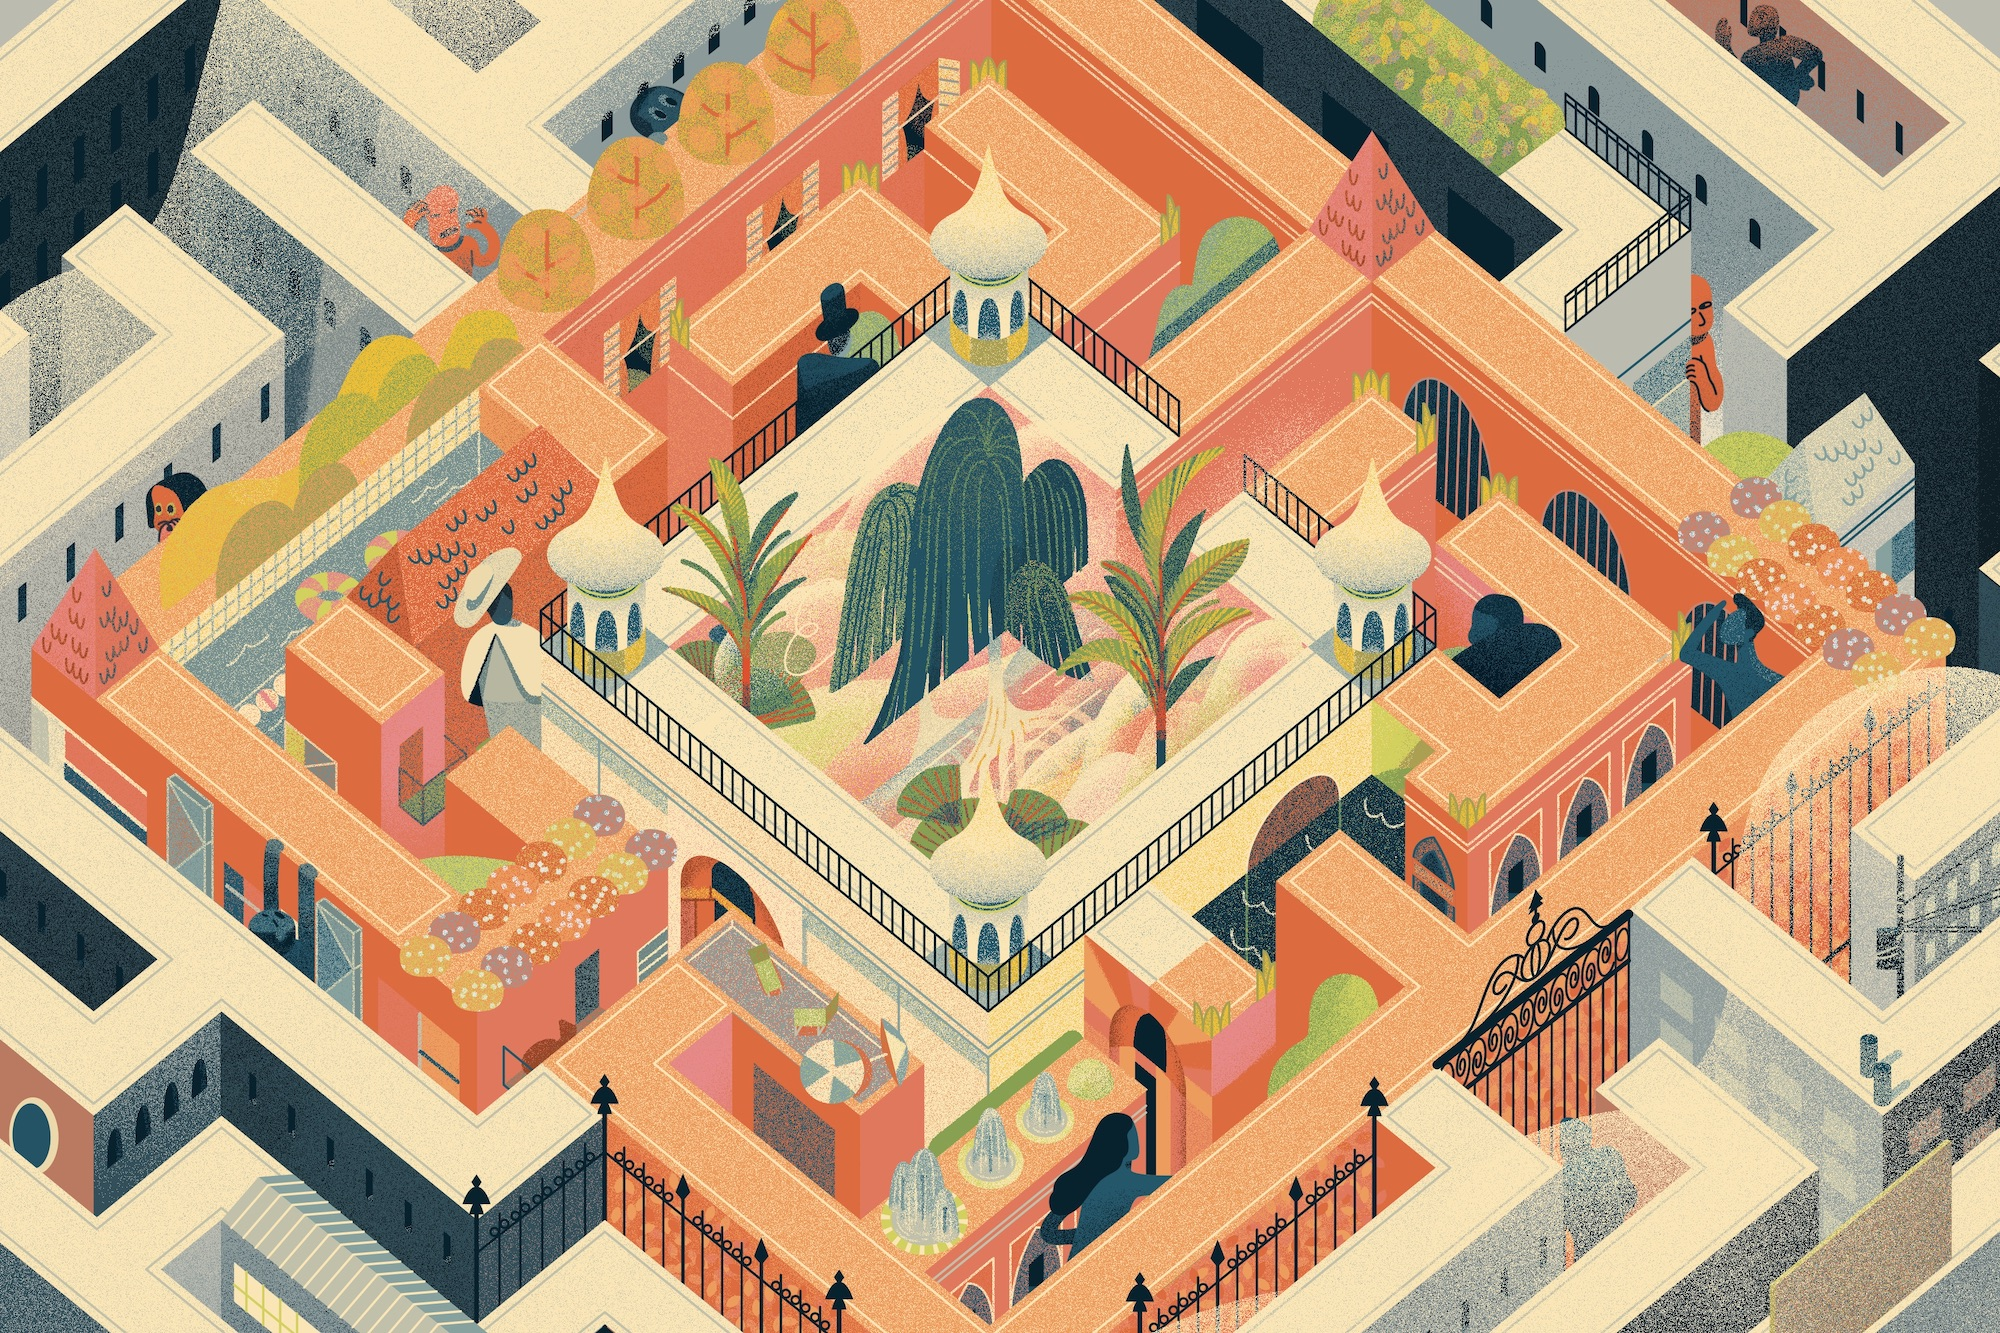 An illustration of people wandering through a huge city maze, with Shangri-la in the center.